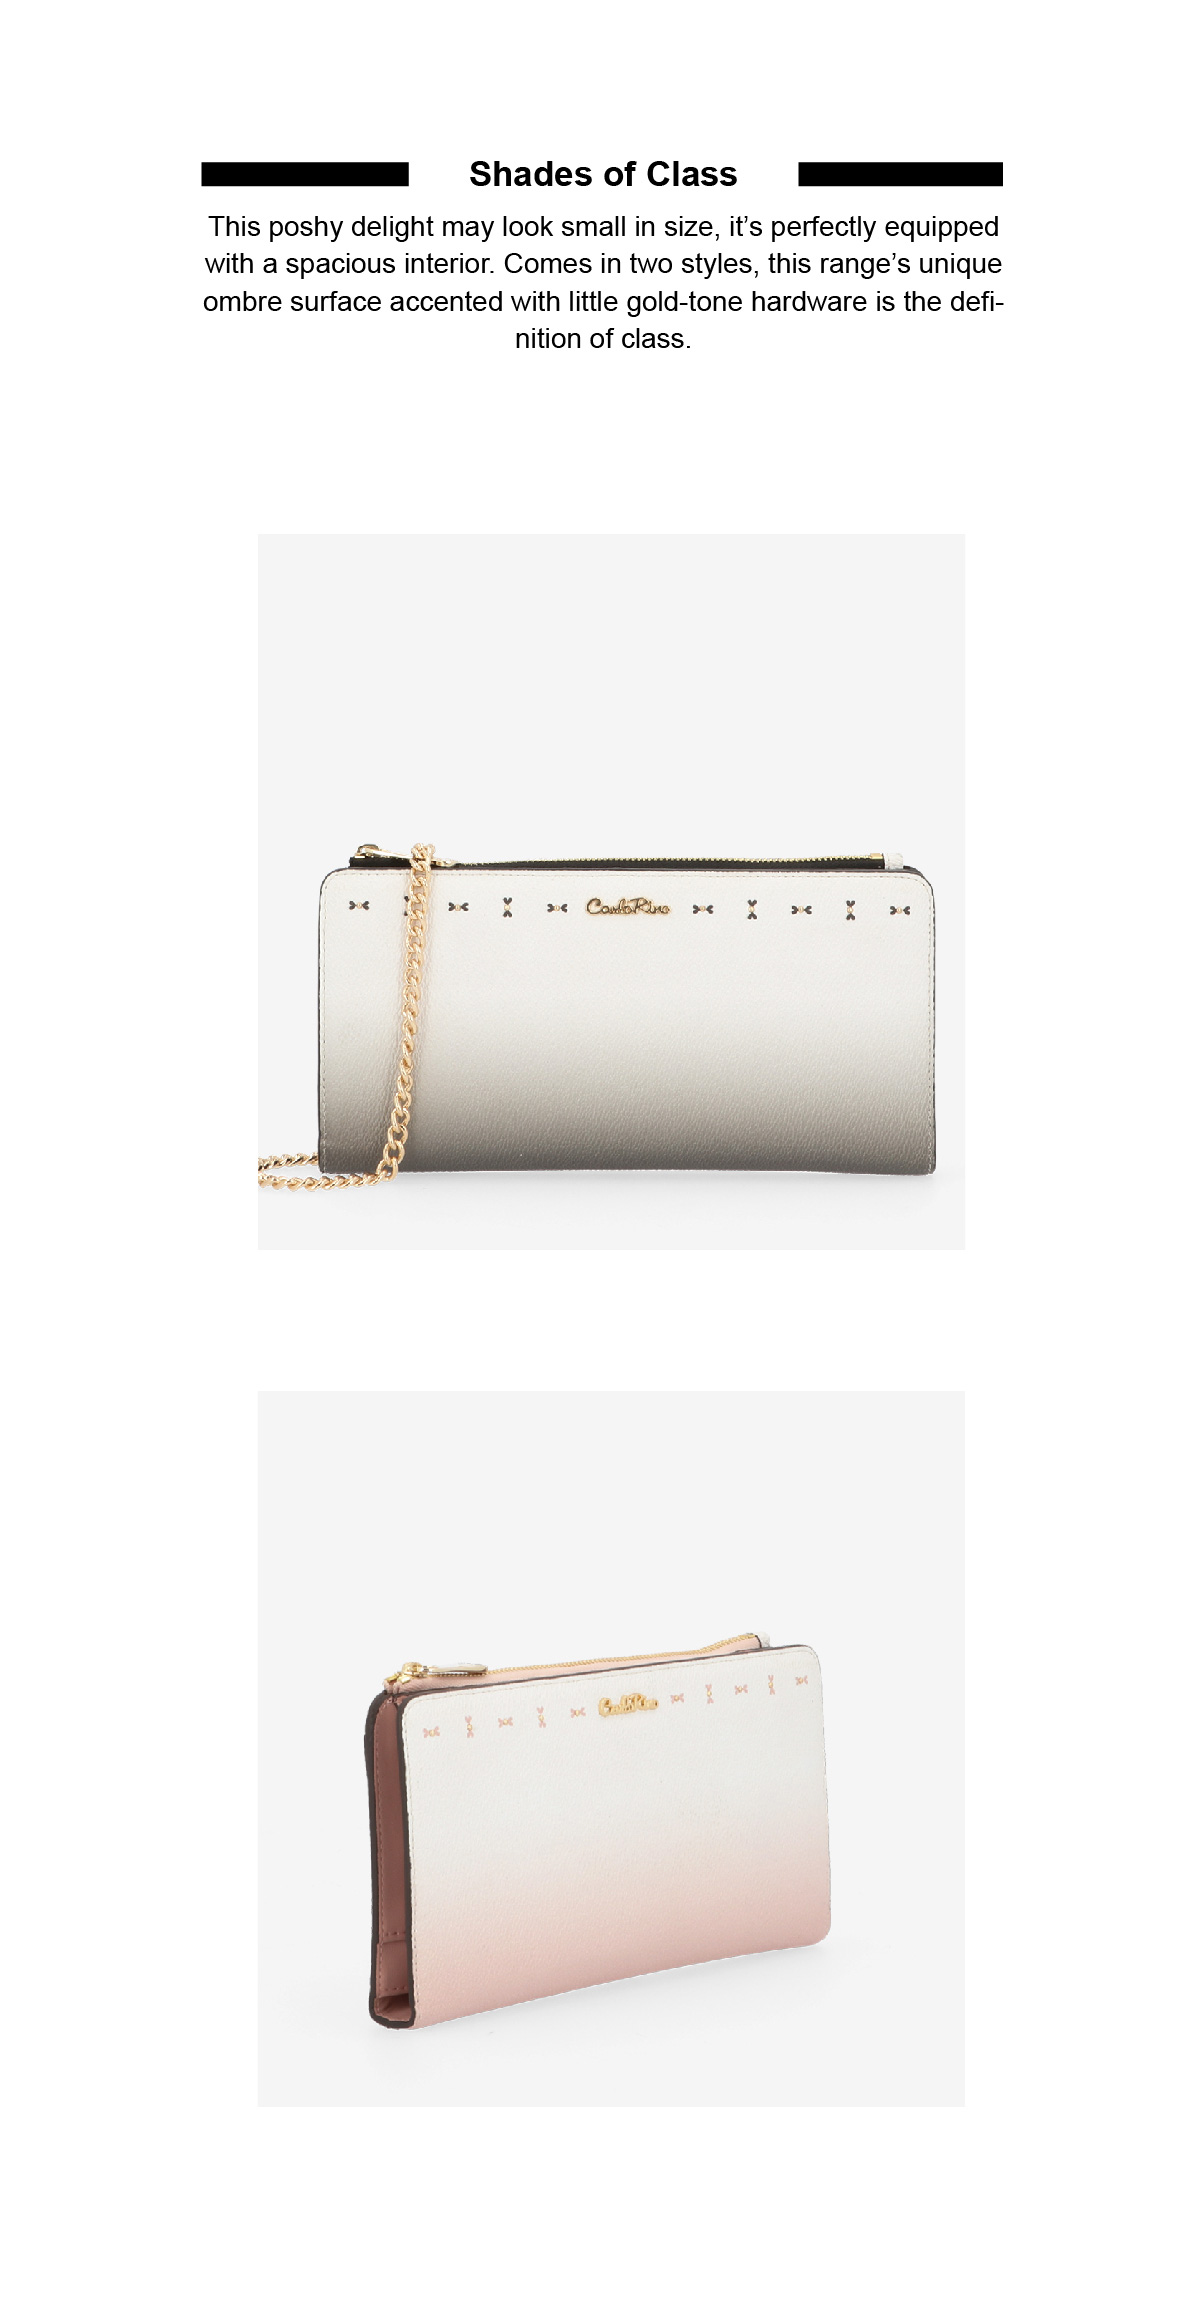 0304931H 501 02 - Shades of Class Cross Body Wallet